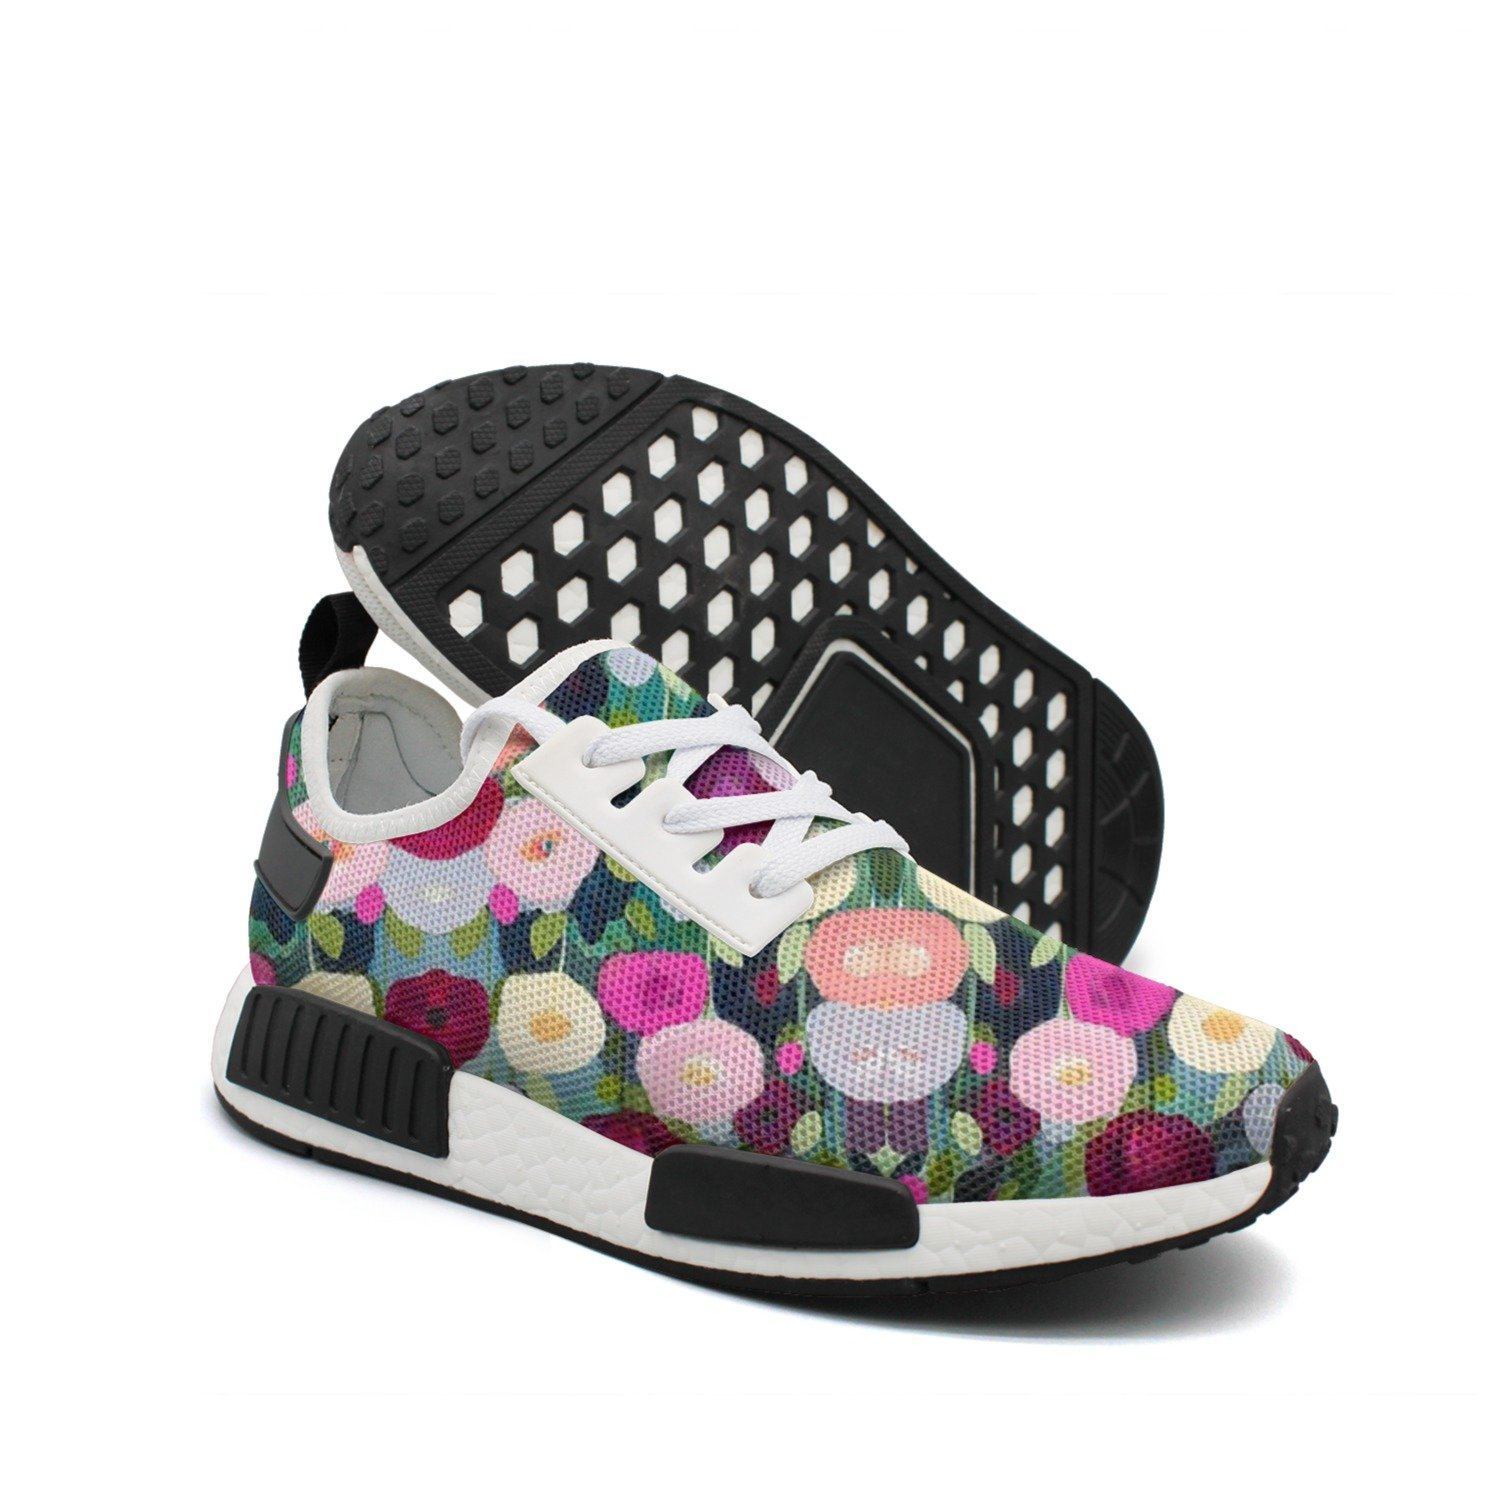 Men's Casual Fashion Sneaker Painting Watercolor Flowers Breathable Lightweight Running Shoes